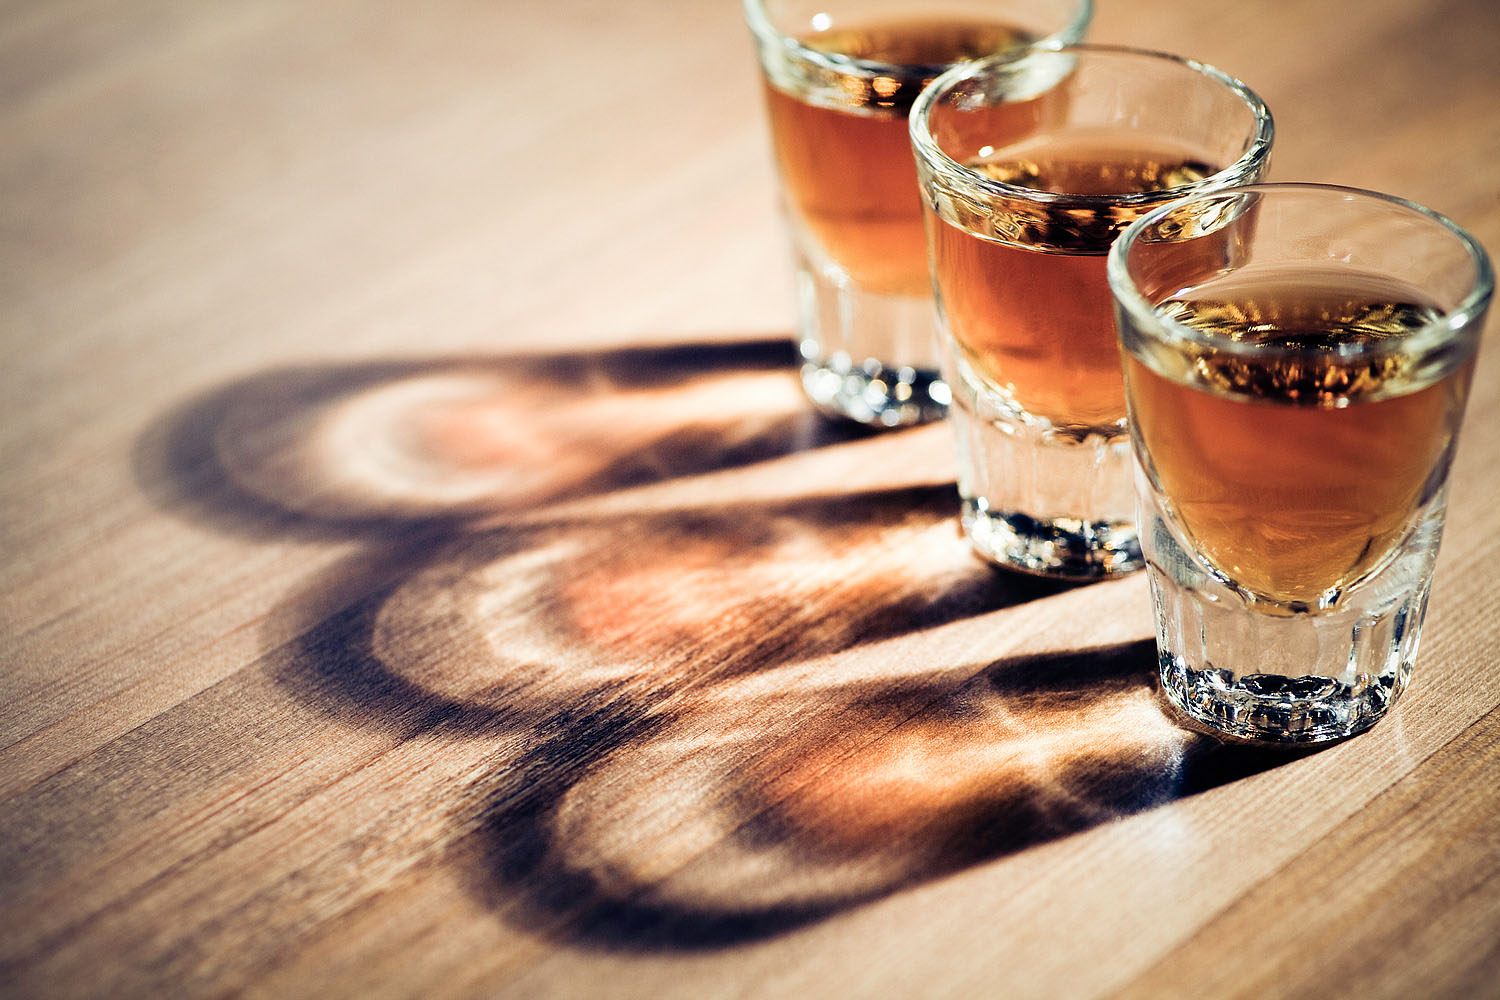 three shot glasses full of dark colored alcohol on top of a bar table. The shot could be whiskey, dark rum, tequila, cognac, or bourbon.